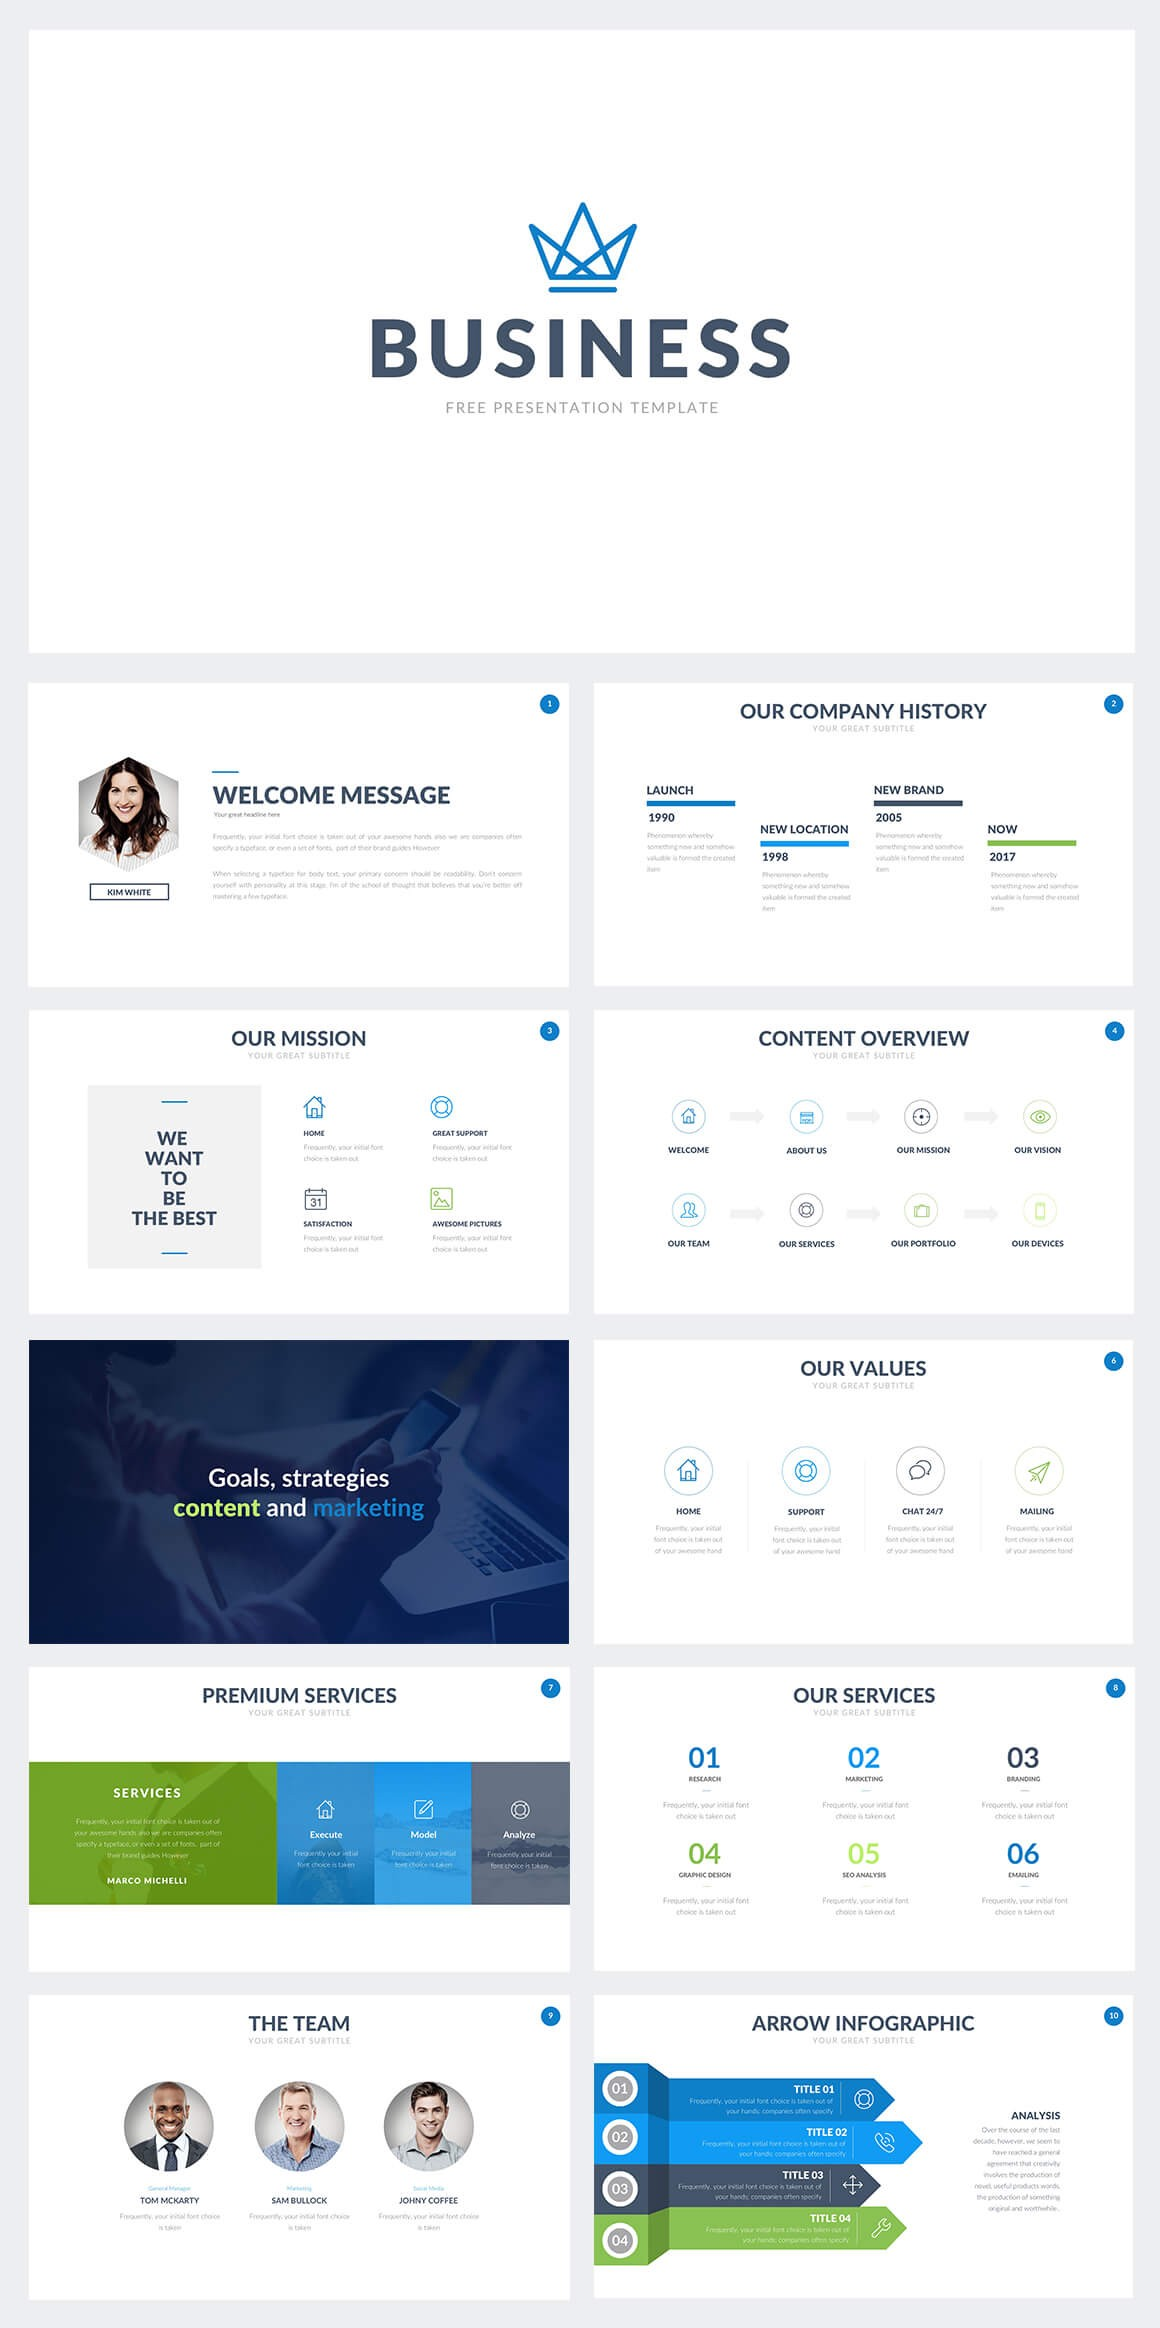 this business ppt template is great to show your companies values missions history and services take advantage of this free perfect business ppt